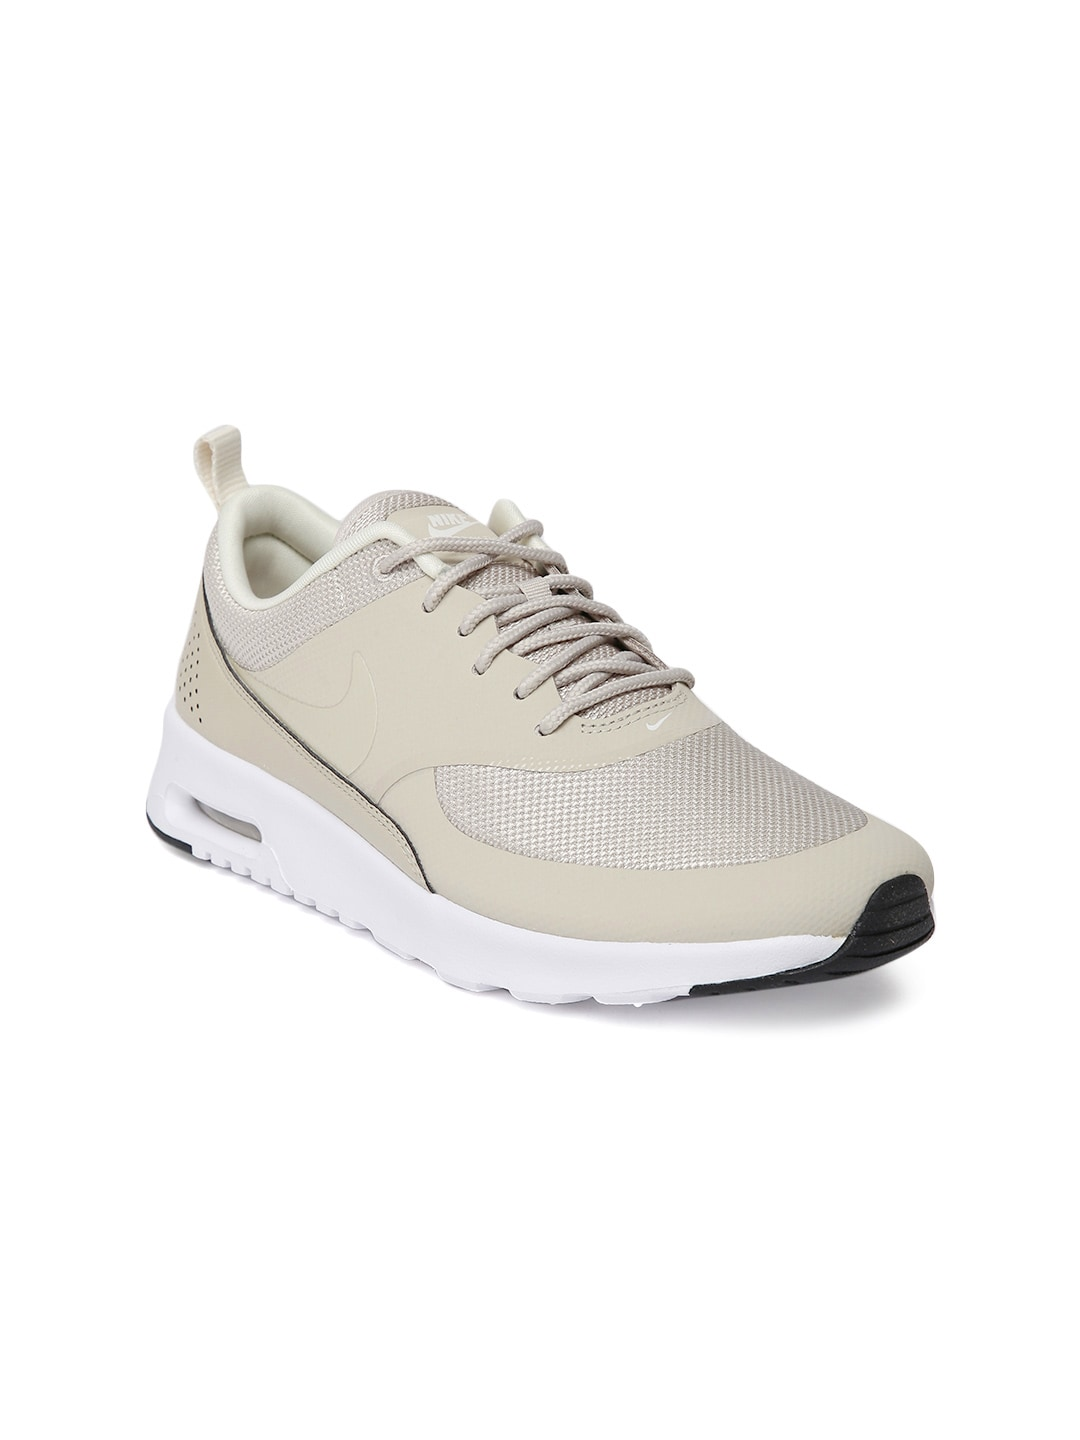 new product 4ceaf 661b8 Nike Air Max - Buy Nike Air Max Shoes, Bags, Sneakers in India